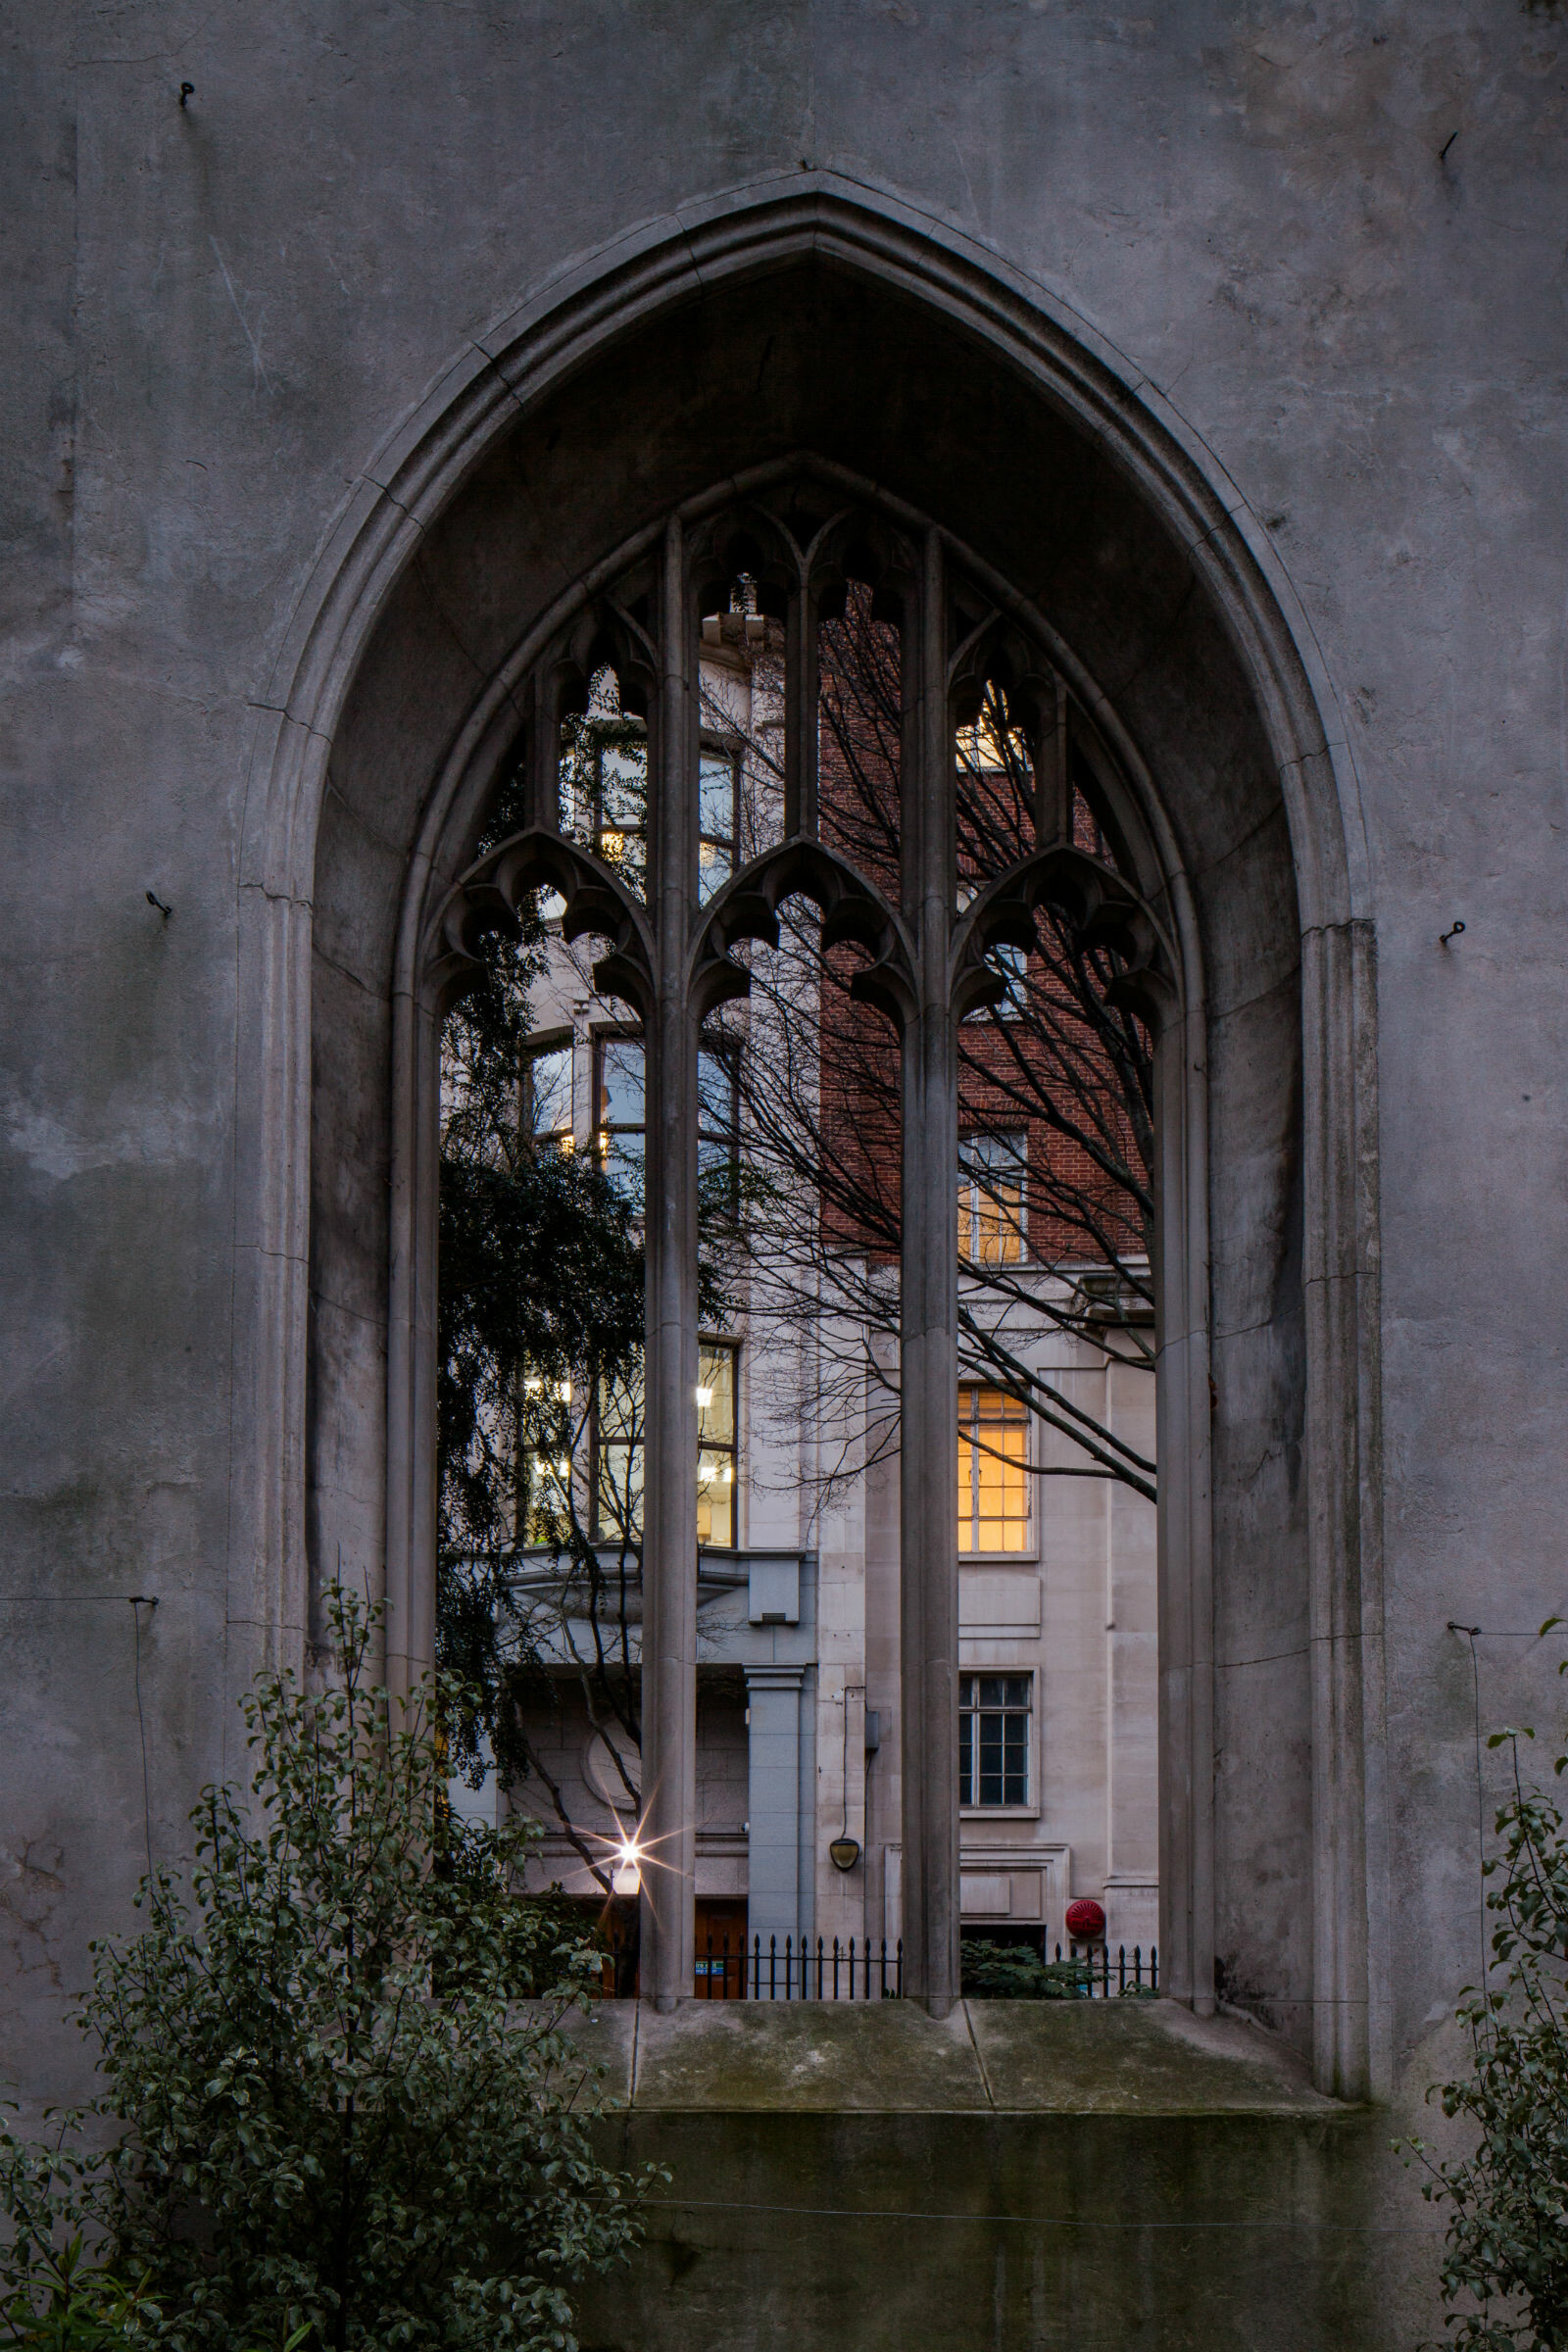 Gothic window at St Dunstan's church